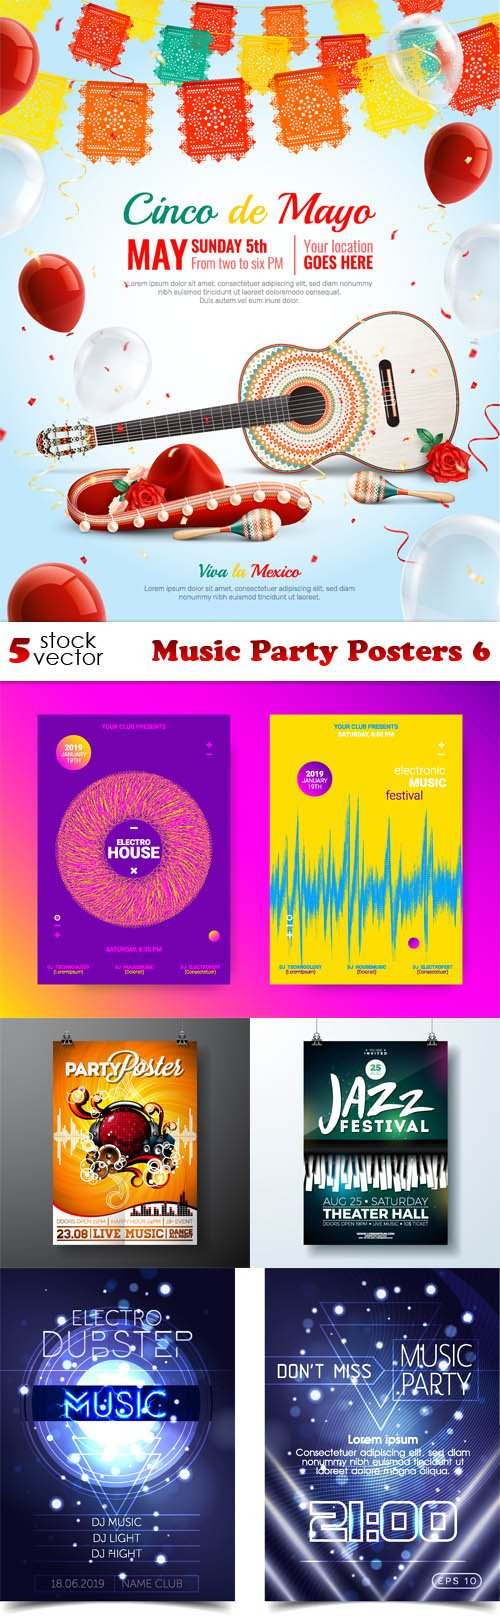 Vectors - Music Party Posters 6